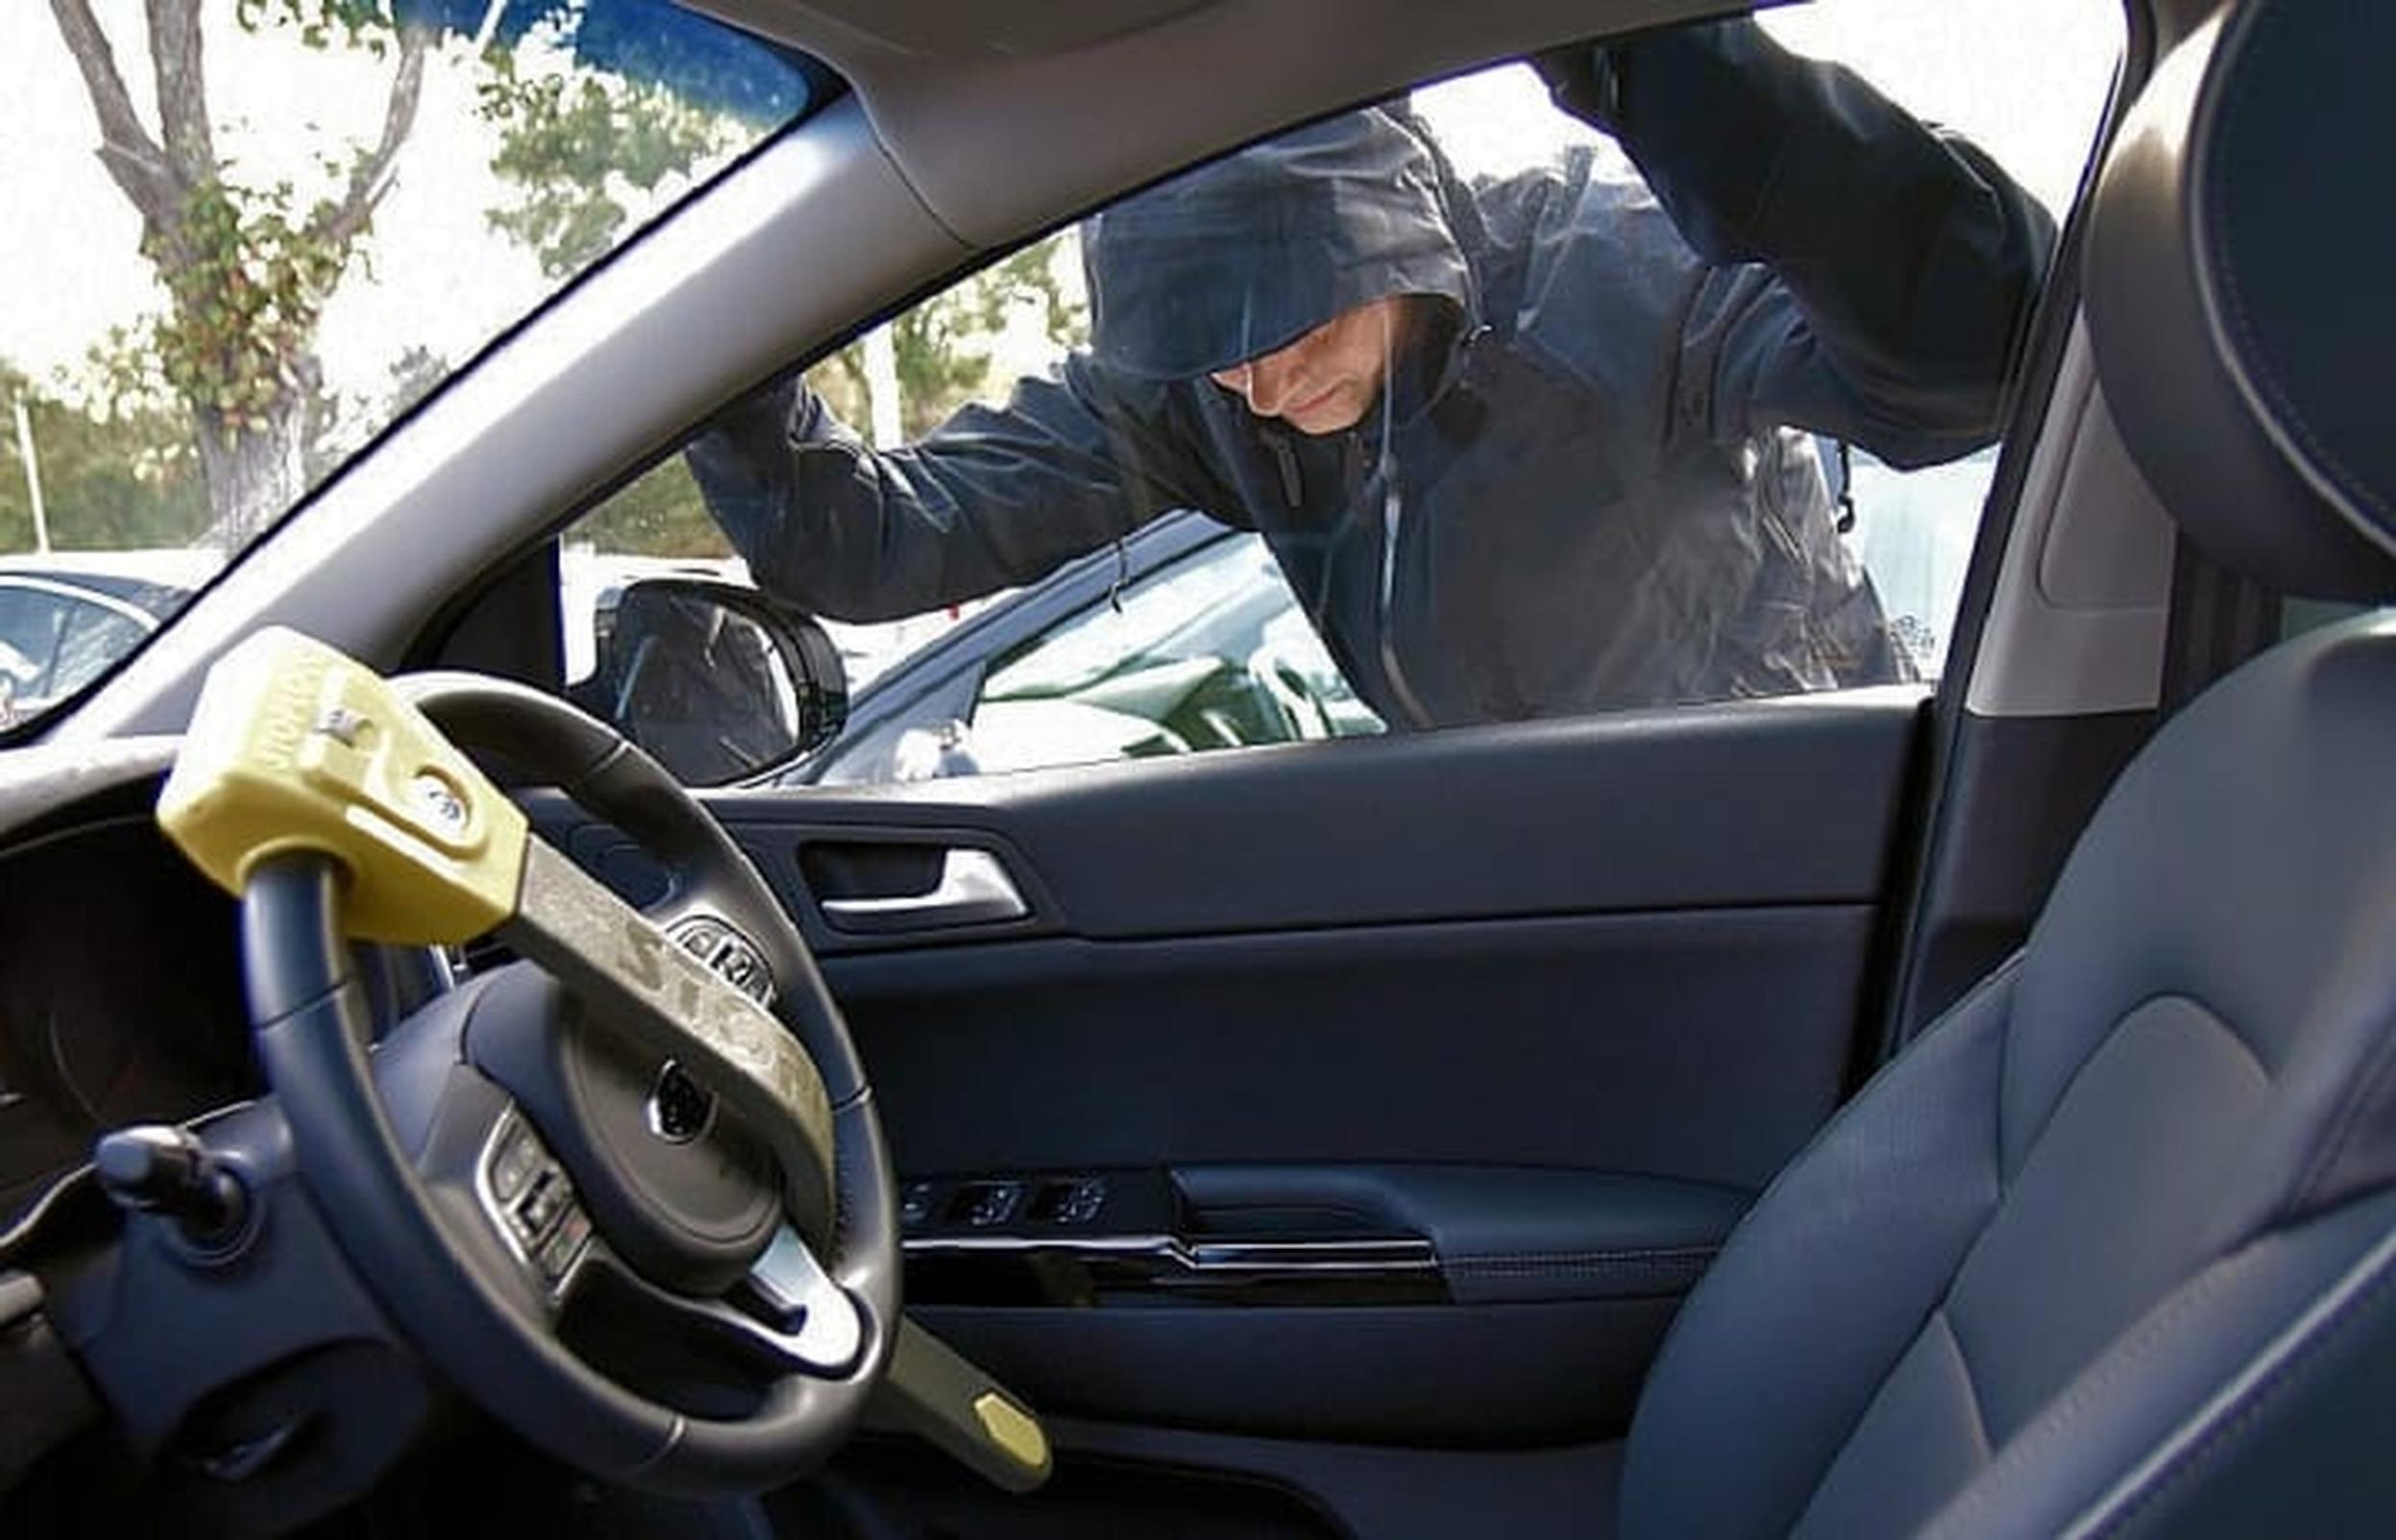 RAC Insurance says devices such as steering wheel locks are starting to reappear as fear thieves now have technology capable of defeating car manufacturers' anti-theft systems